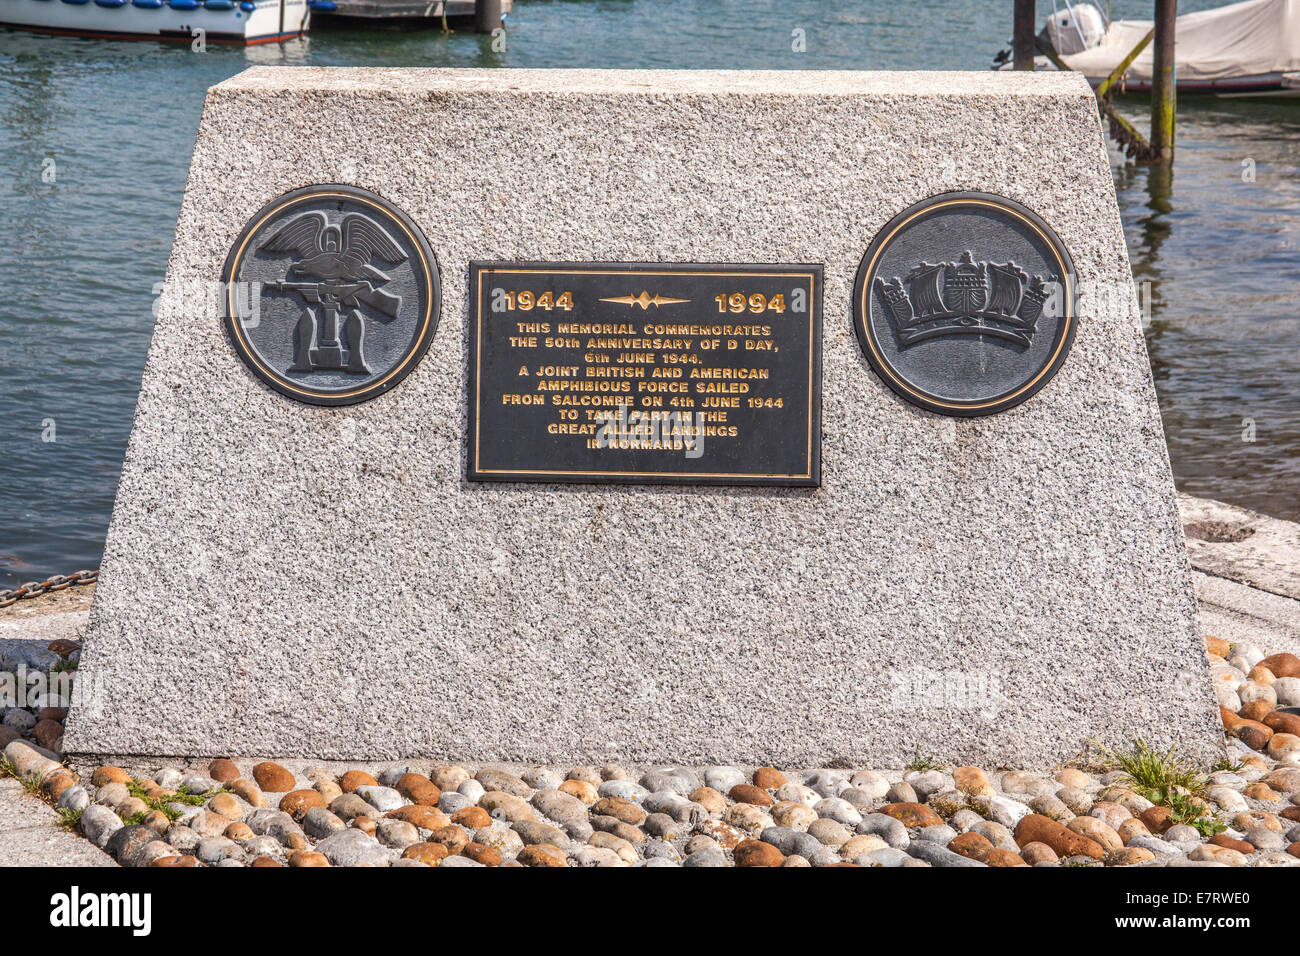 D Day landings fiftieth anniversary  memorial, Salcombe, South Devon, England, United Kingdom. - Stock Image